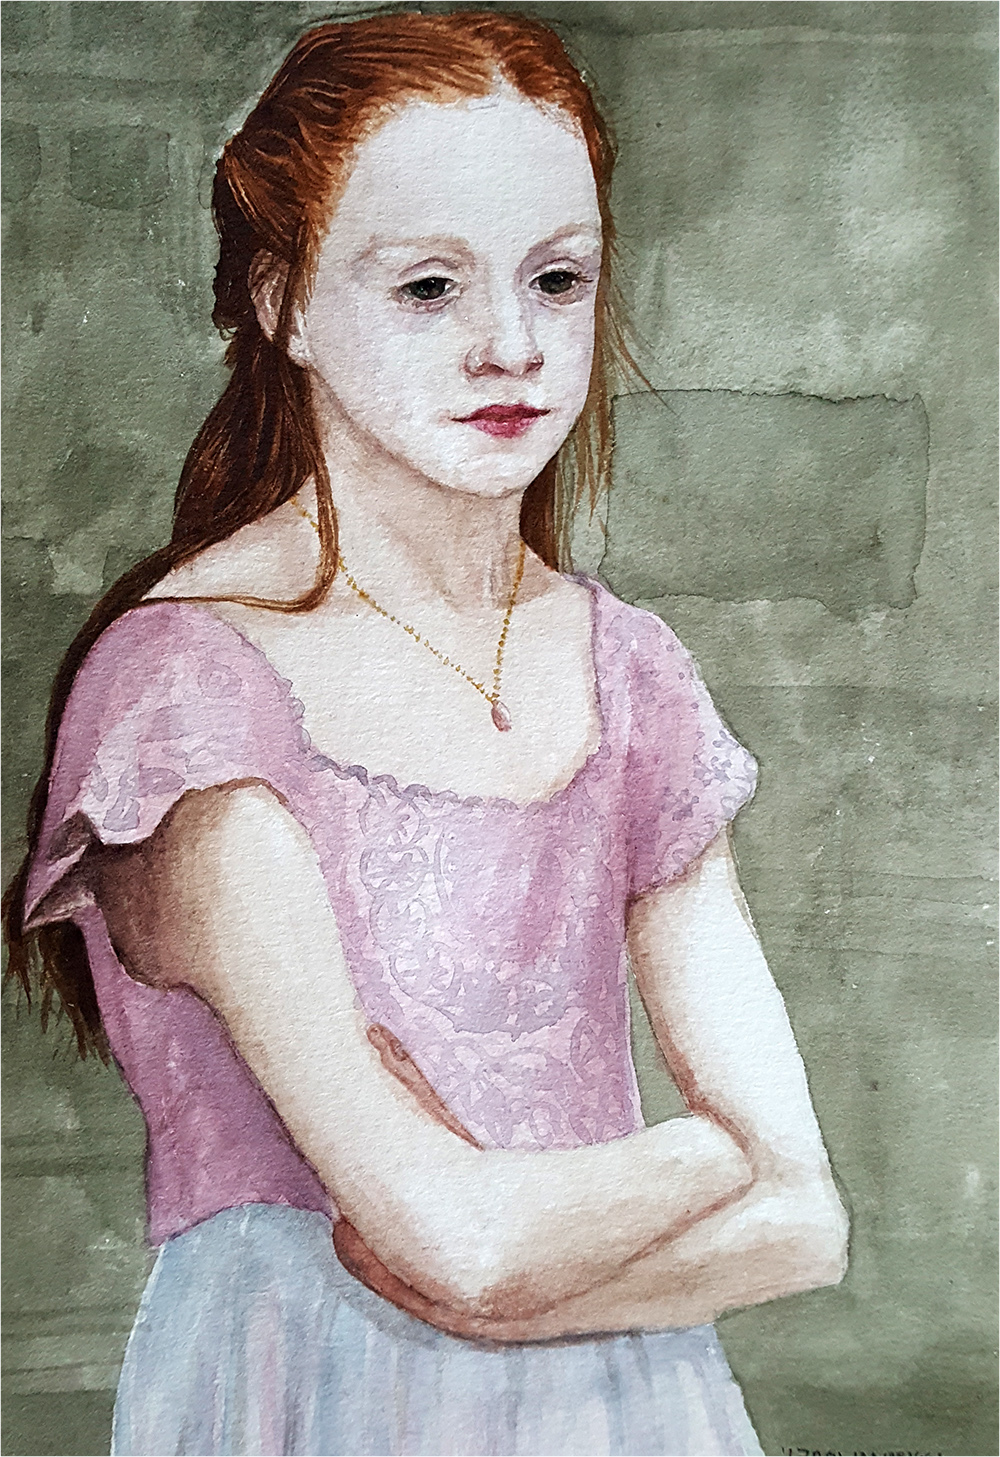 Finished watercolour portrait